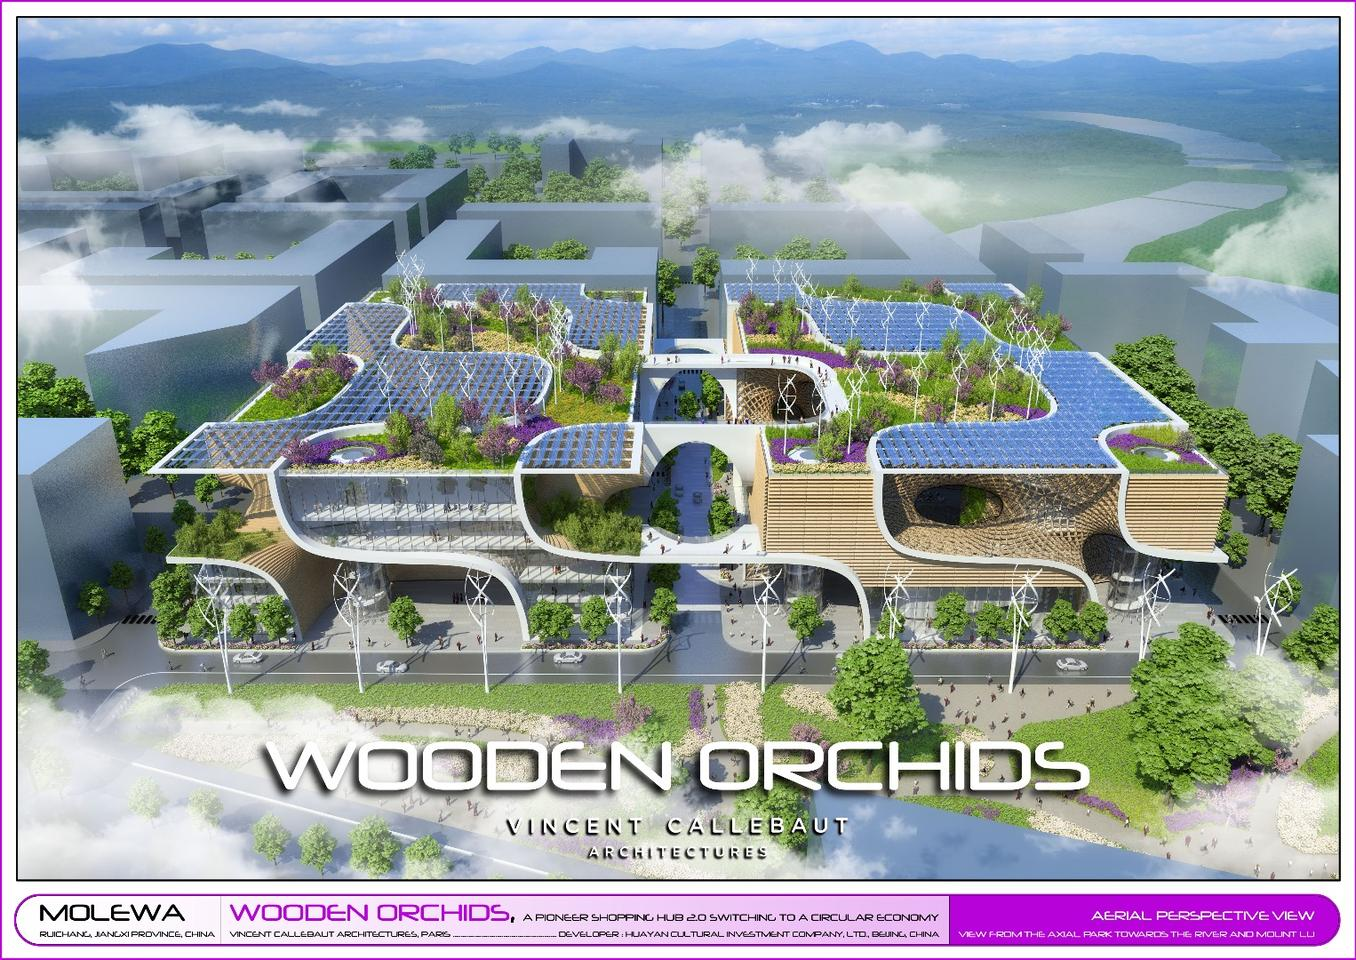 The Wooden Orchids project, by Vincent Callebaut Architectures